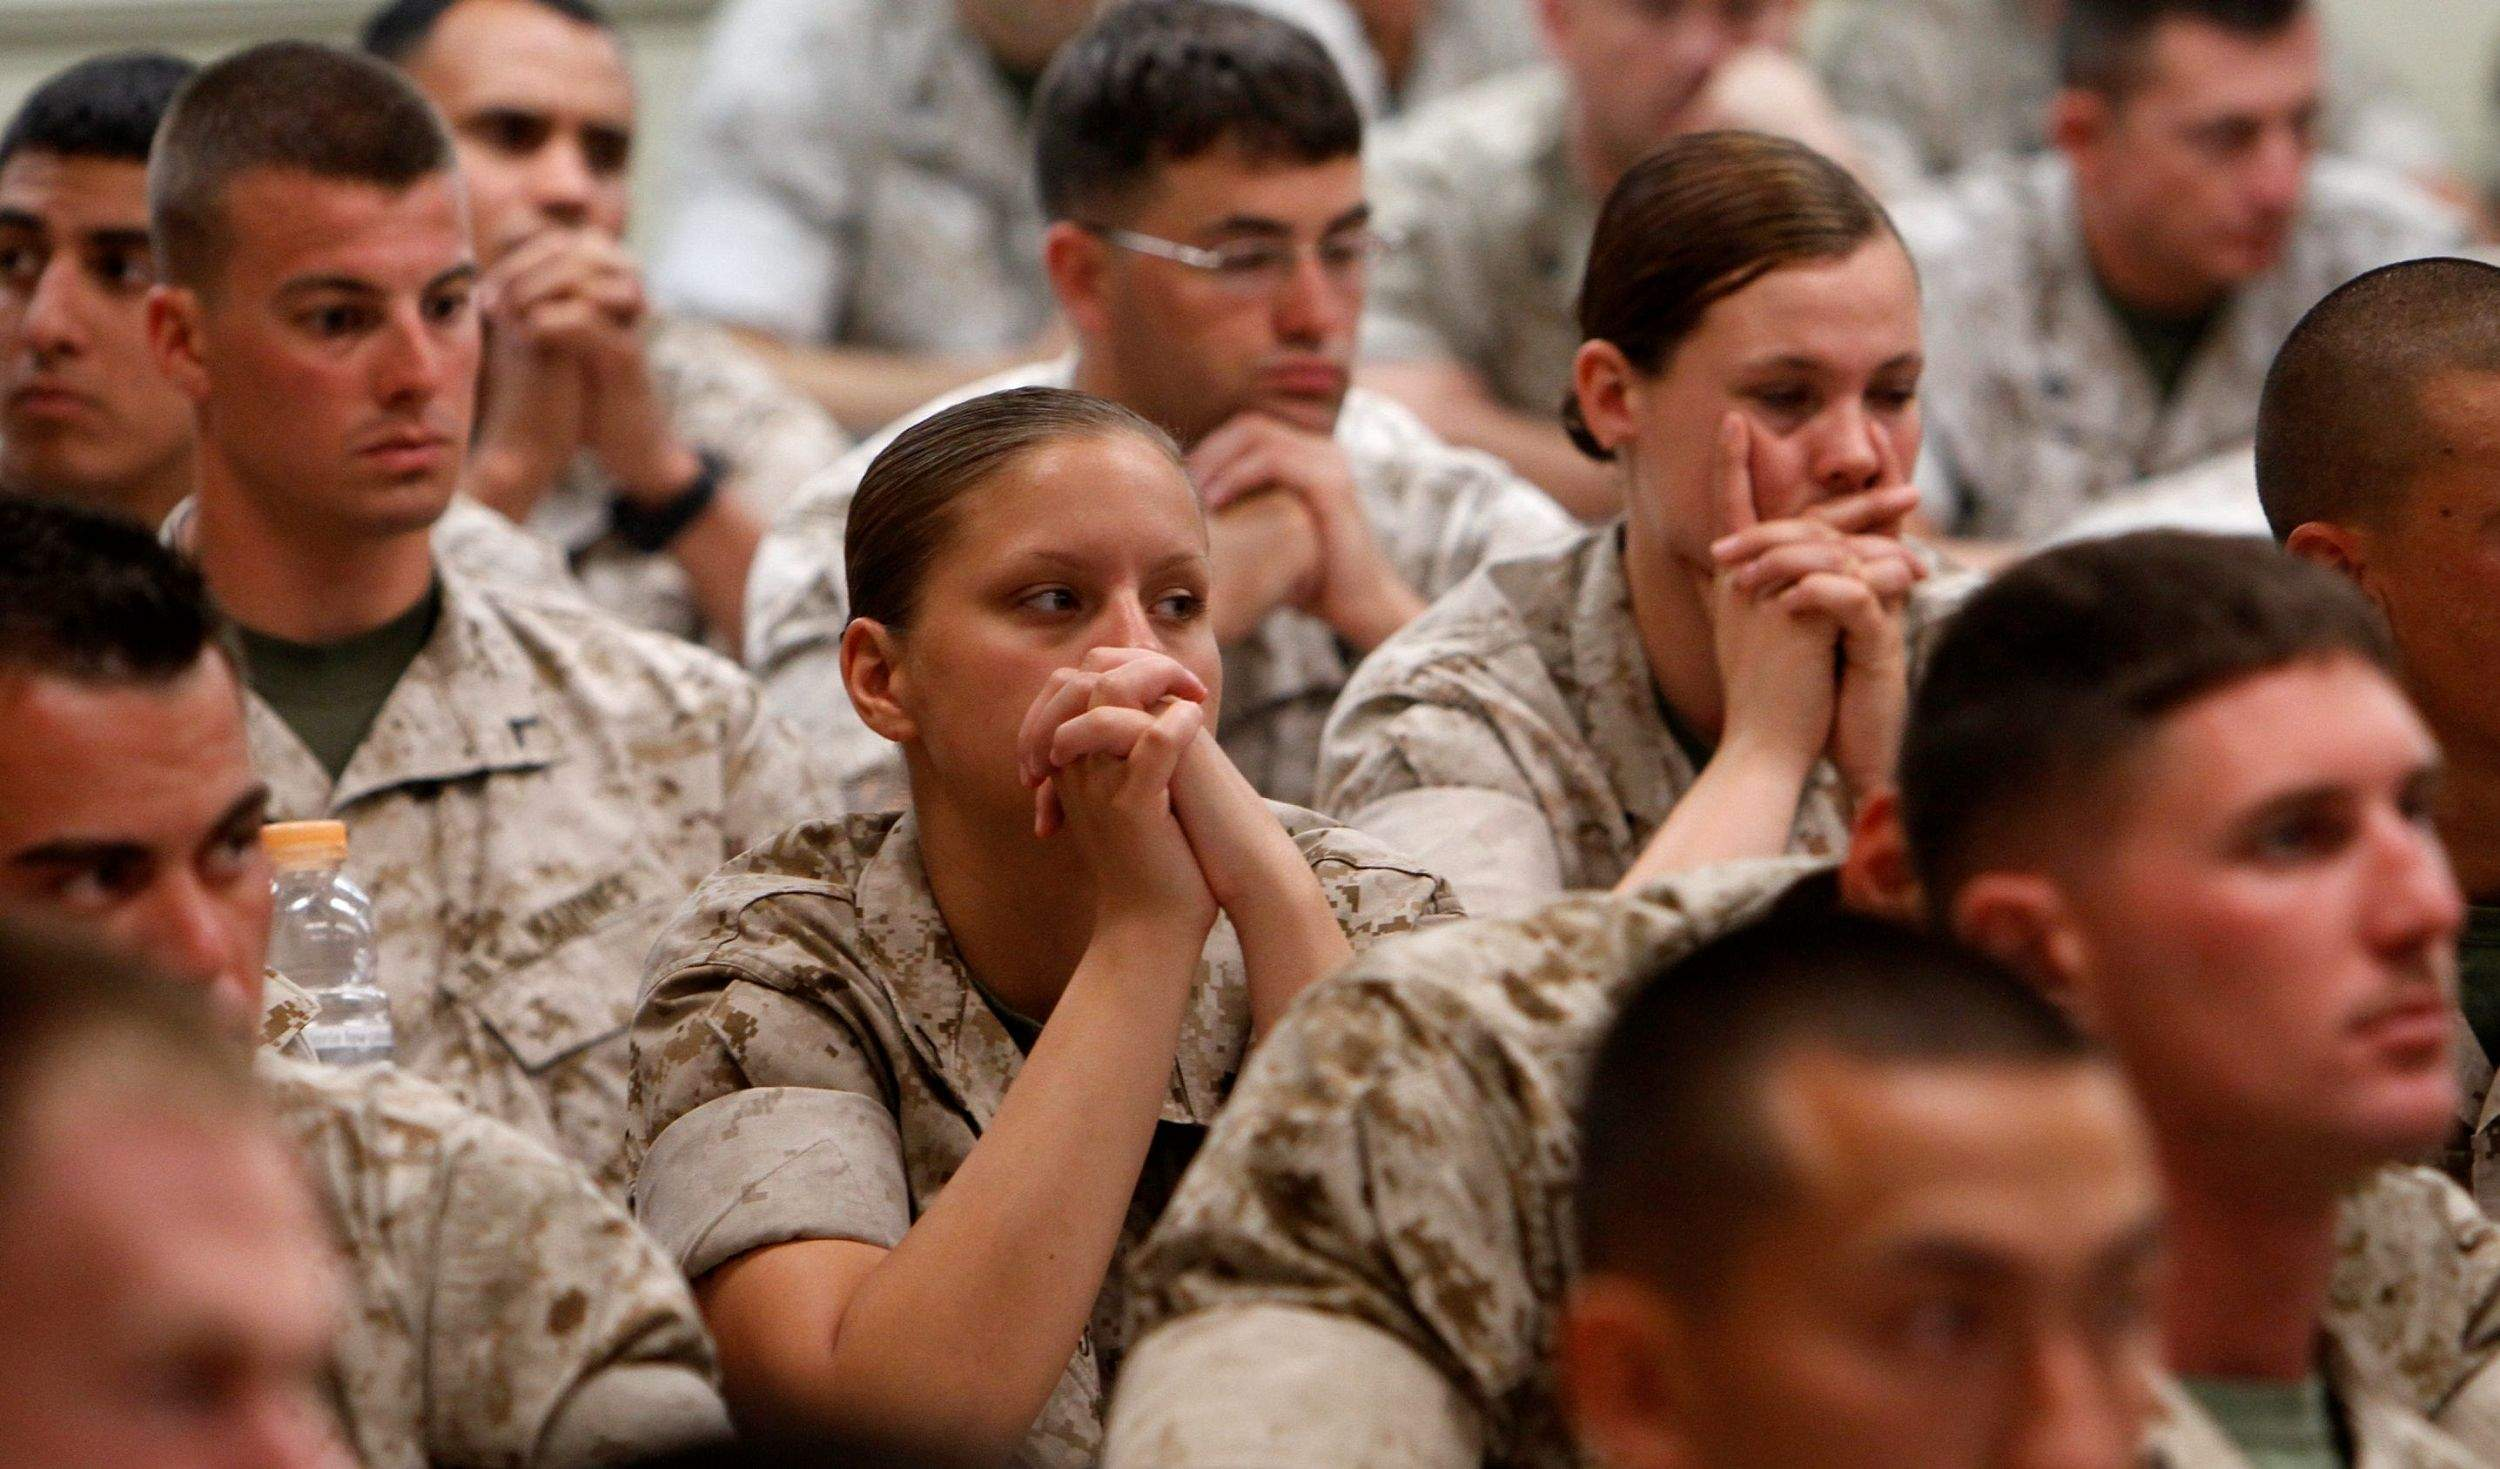 essay on homosexuality in the military Persuasive essay on homosexuality one of the issues surrounding homosexuality is the desire for equal treatment and protection of homosexuals they say that homosexuals are also humans who deserve to be treated with respect and given protection by the society just like anybody else.